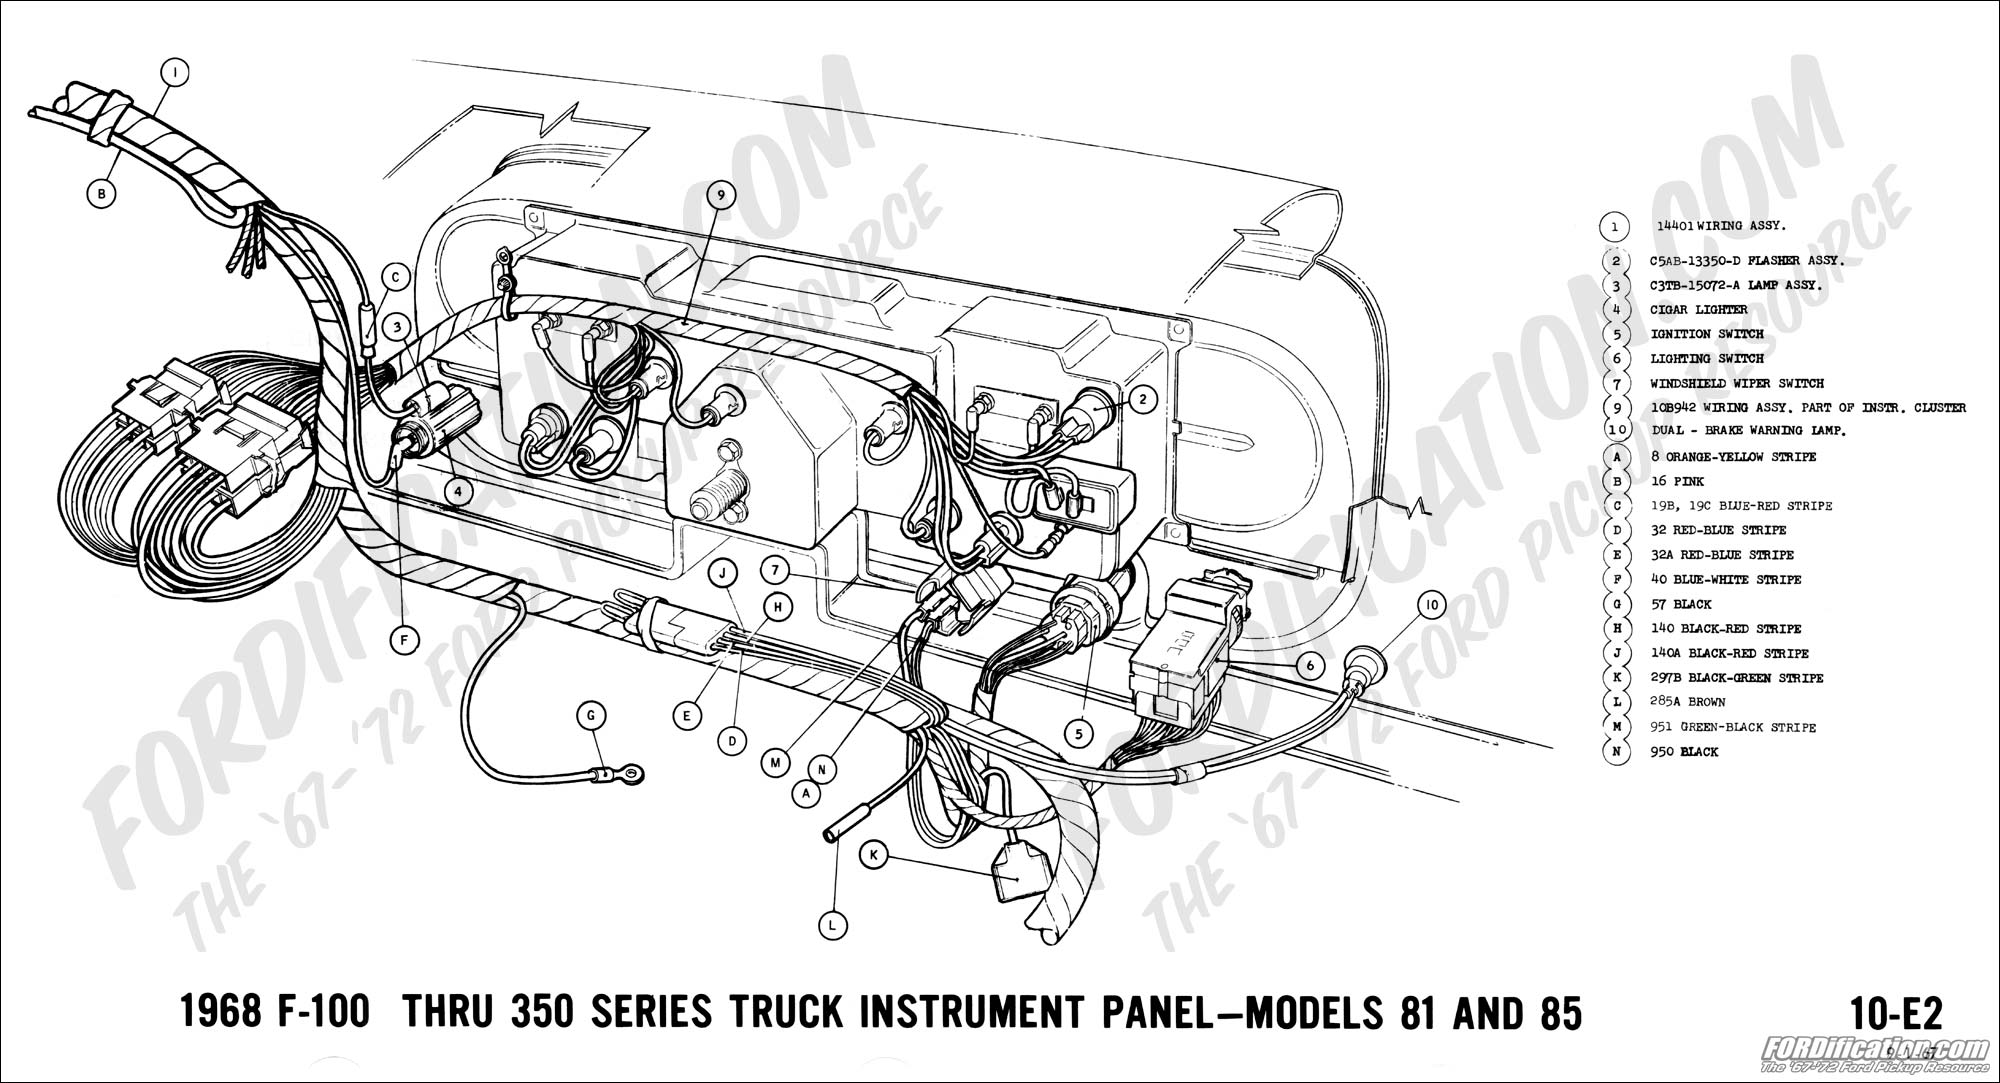 ford truck wiring diagrams wiring library ford truck technical drawings and schematics section h wiring 75 ford maverick vacuum diagram 1970 ford